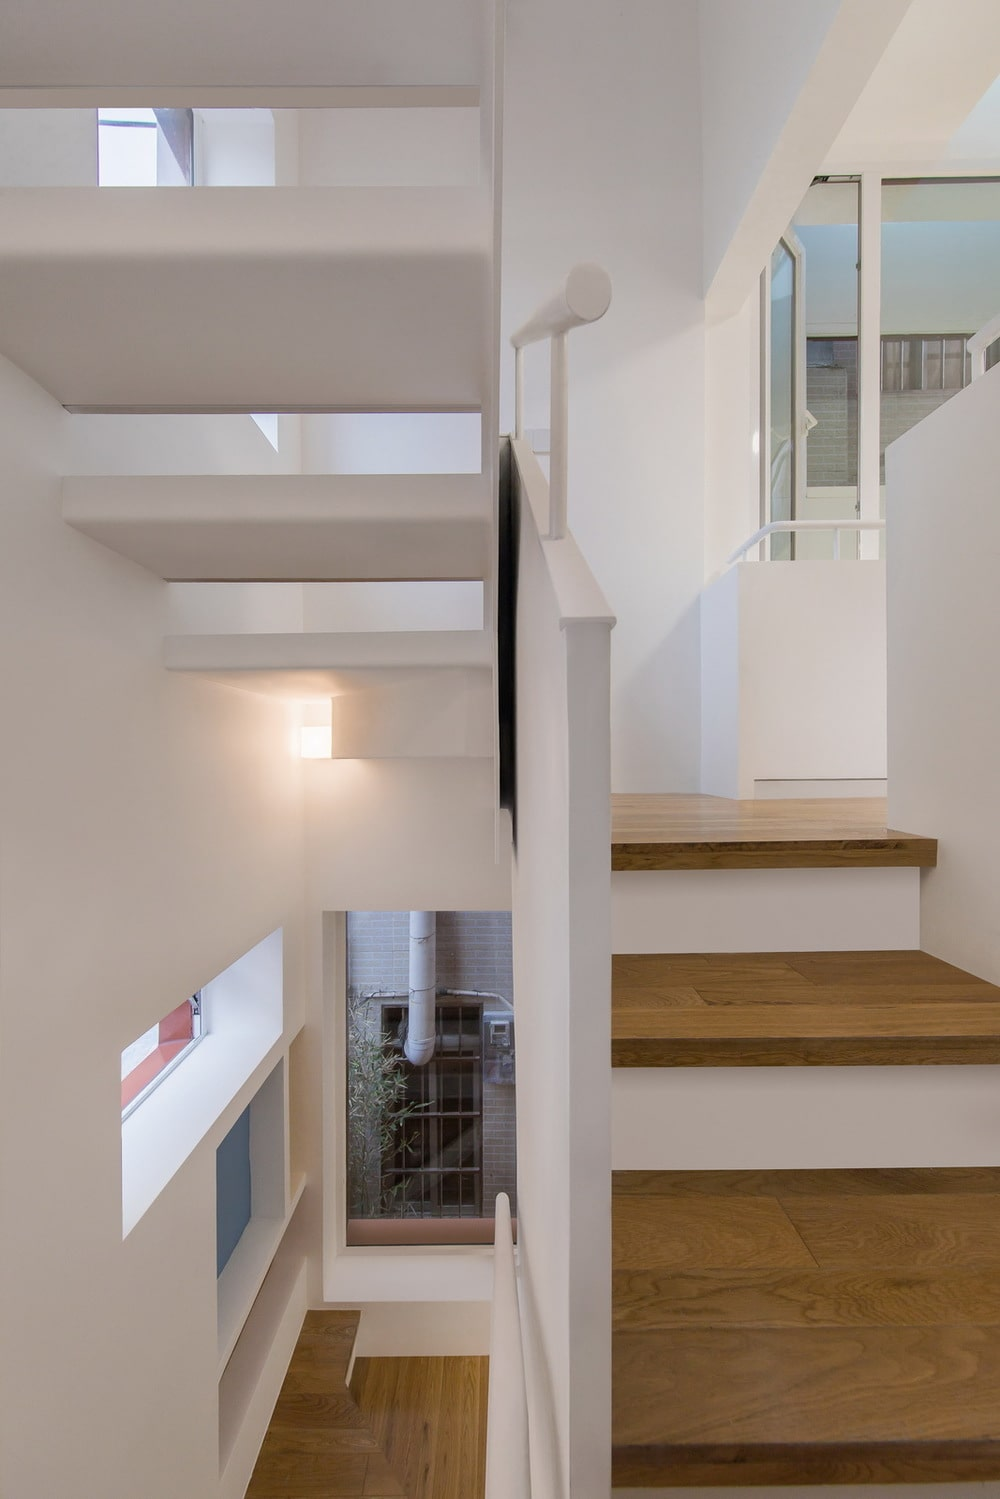 This is a close look at the staircase showcasing its wooden steps and a view of the foyer and landing.